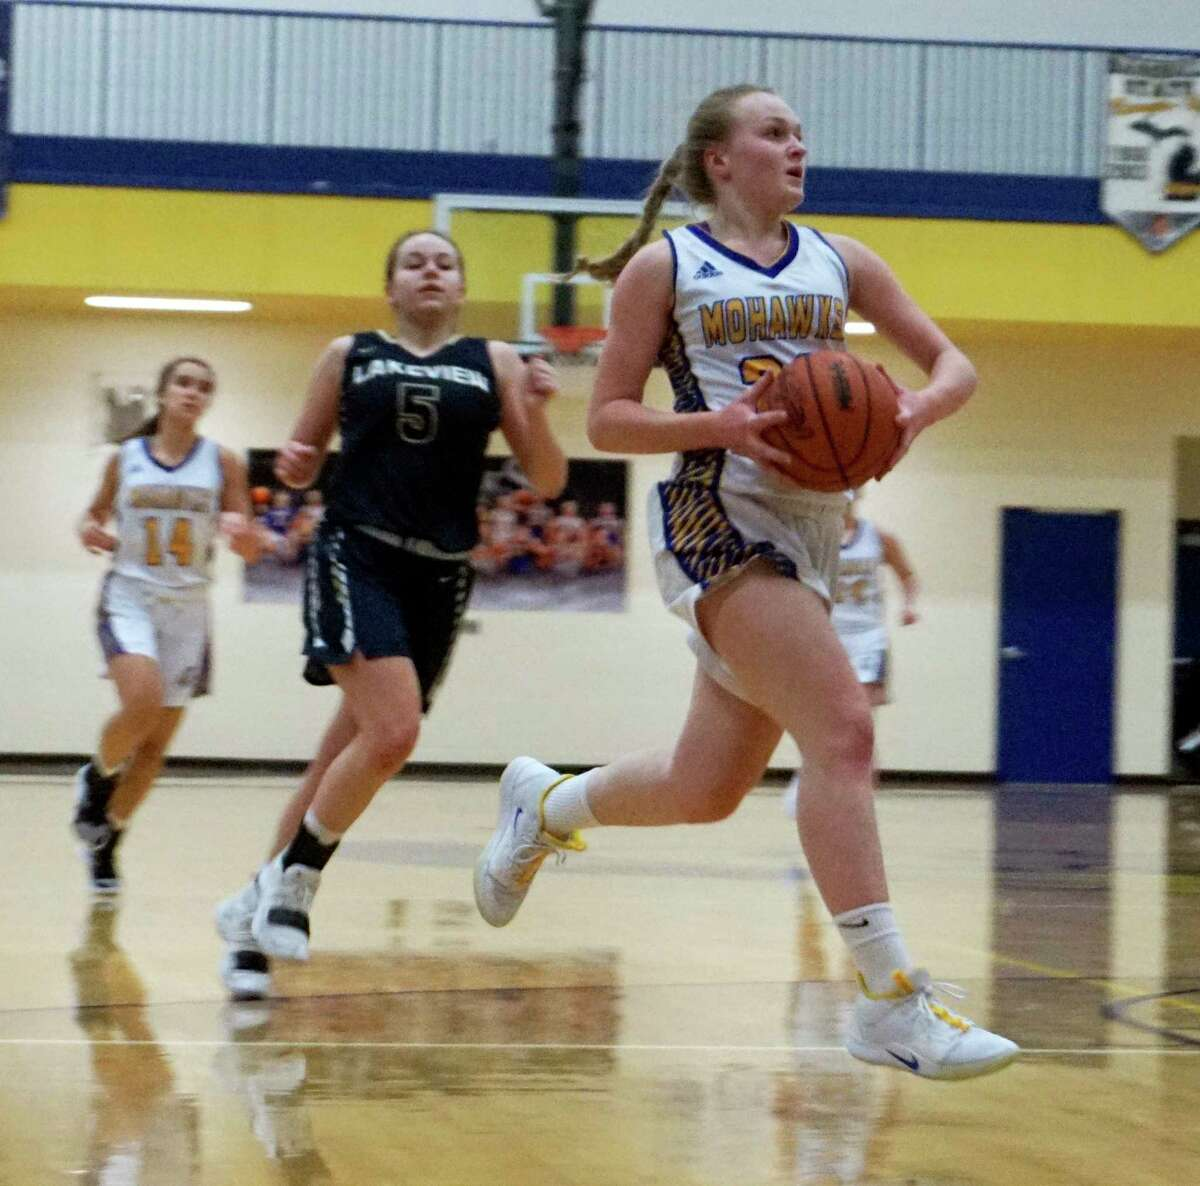 Mohawk sophomore Madison Garbow glides through the lane on the way to a layup during the MS girls' win over Lakeview on Friday night. (Pioneer photo/Joe Judd)